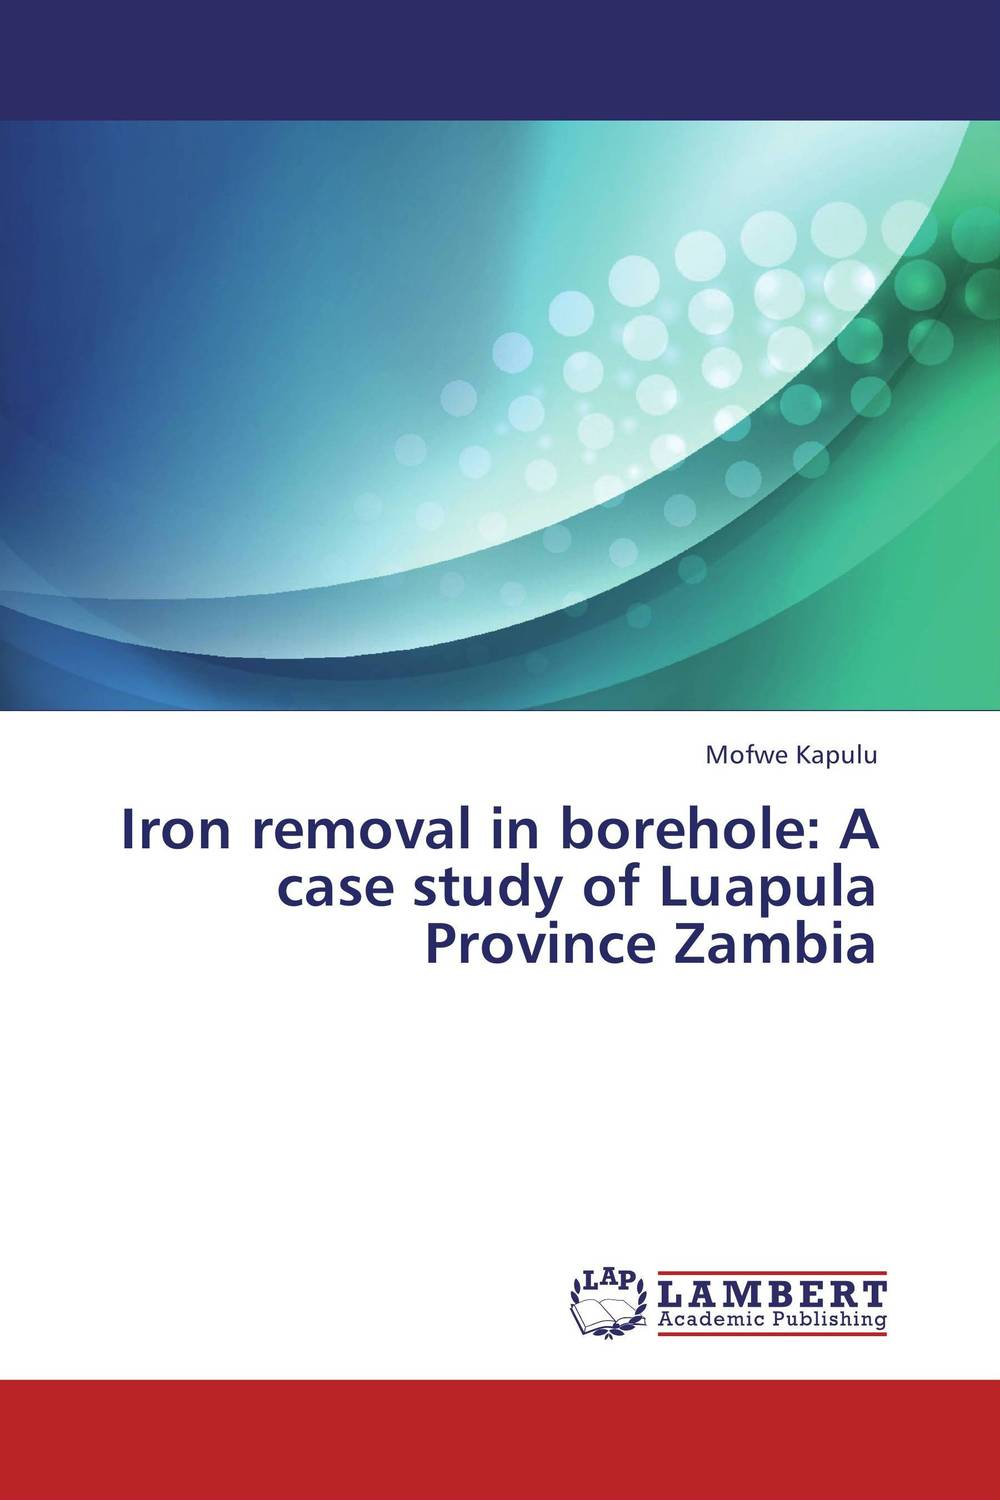 Iron removal in borehole: A case study of Luapula Province Zambia analysis fate and removal of pharmaceuticals in the water cycle 50